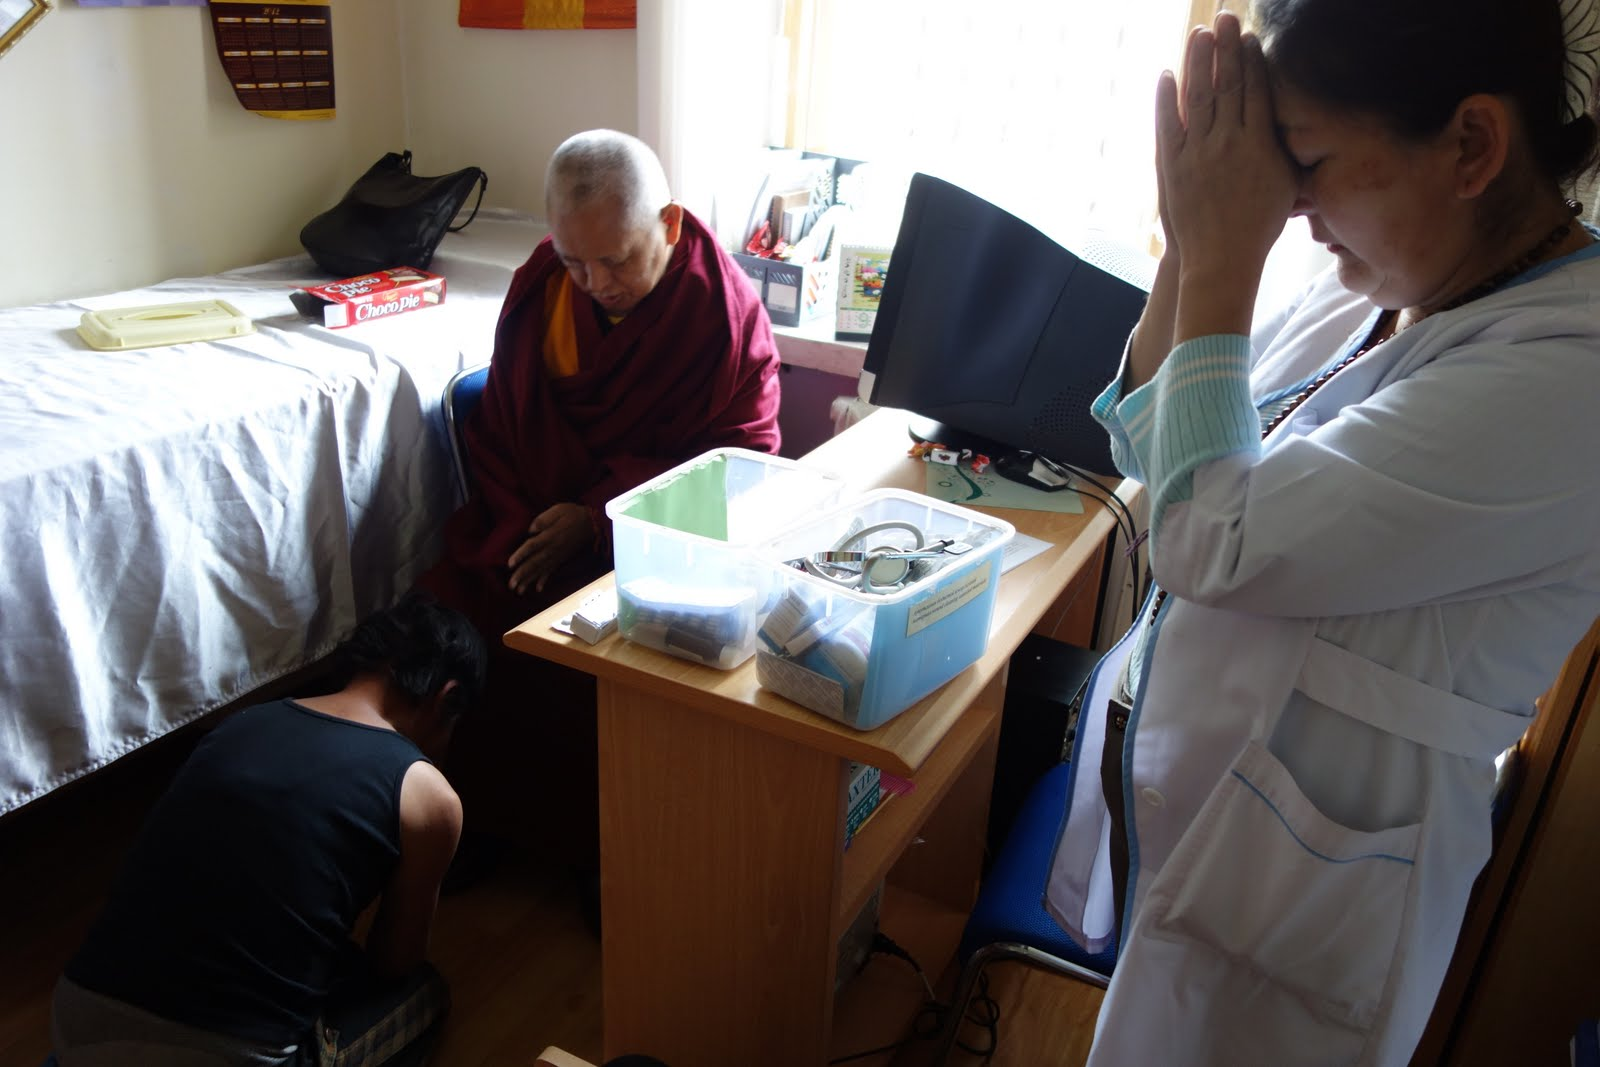 After this woman heard that Rinpoche was the main reason FPMT Mongolia's free soup kitchen and health clinic in Ulaanbaatar, Mongolia she immediately prostrated before Rinpoche thanking him because she only managed to stay alive due this help. September 2013. Photo by Ven. Roger Kunsang.